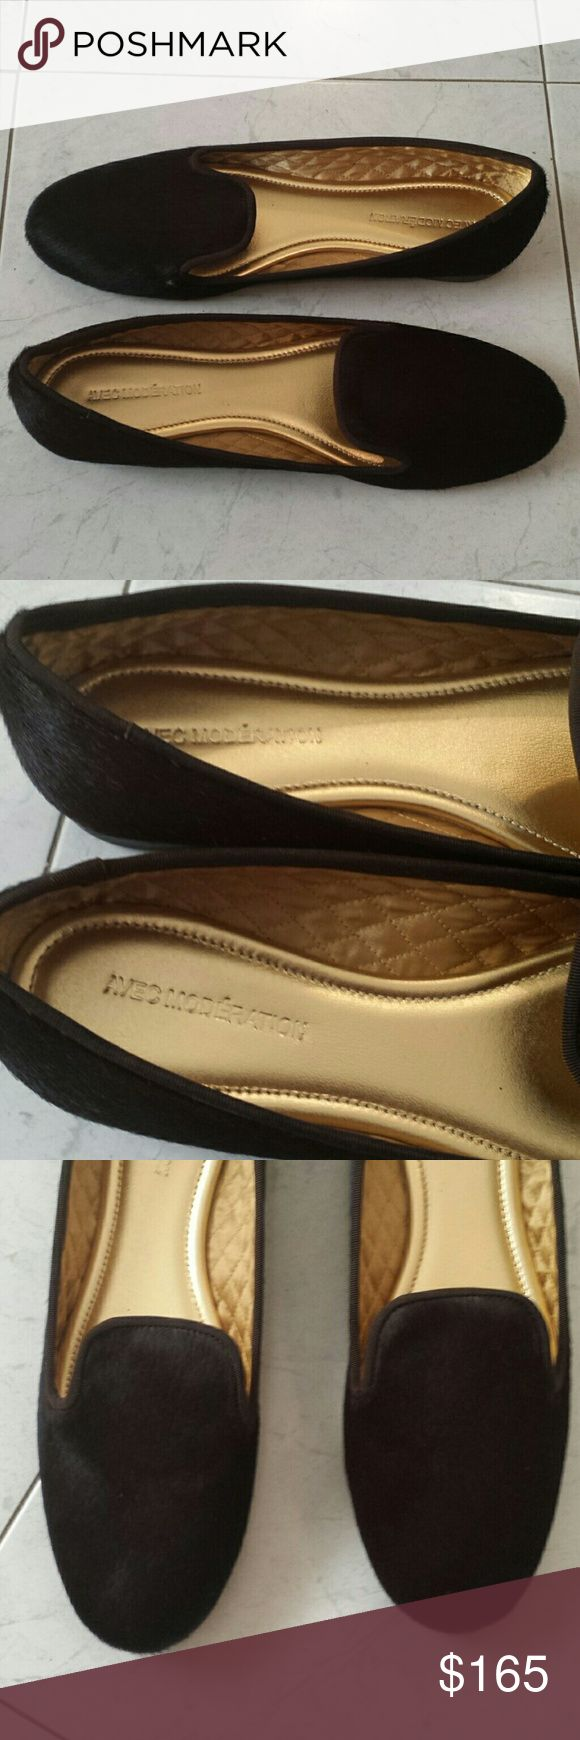 Avec Moderation Loafers -Avec Moderation brown pony hair and lined in gold leather loafers; -Brand new, never worn; -Size 11 US. Avec Moderation Shoes Flats & Loafers